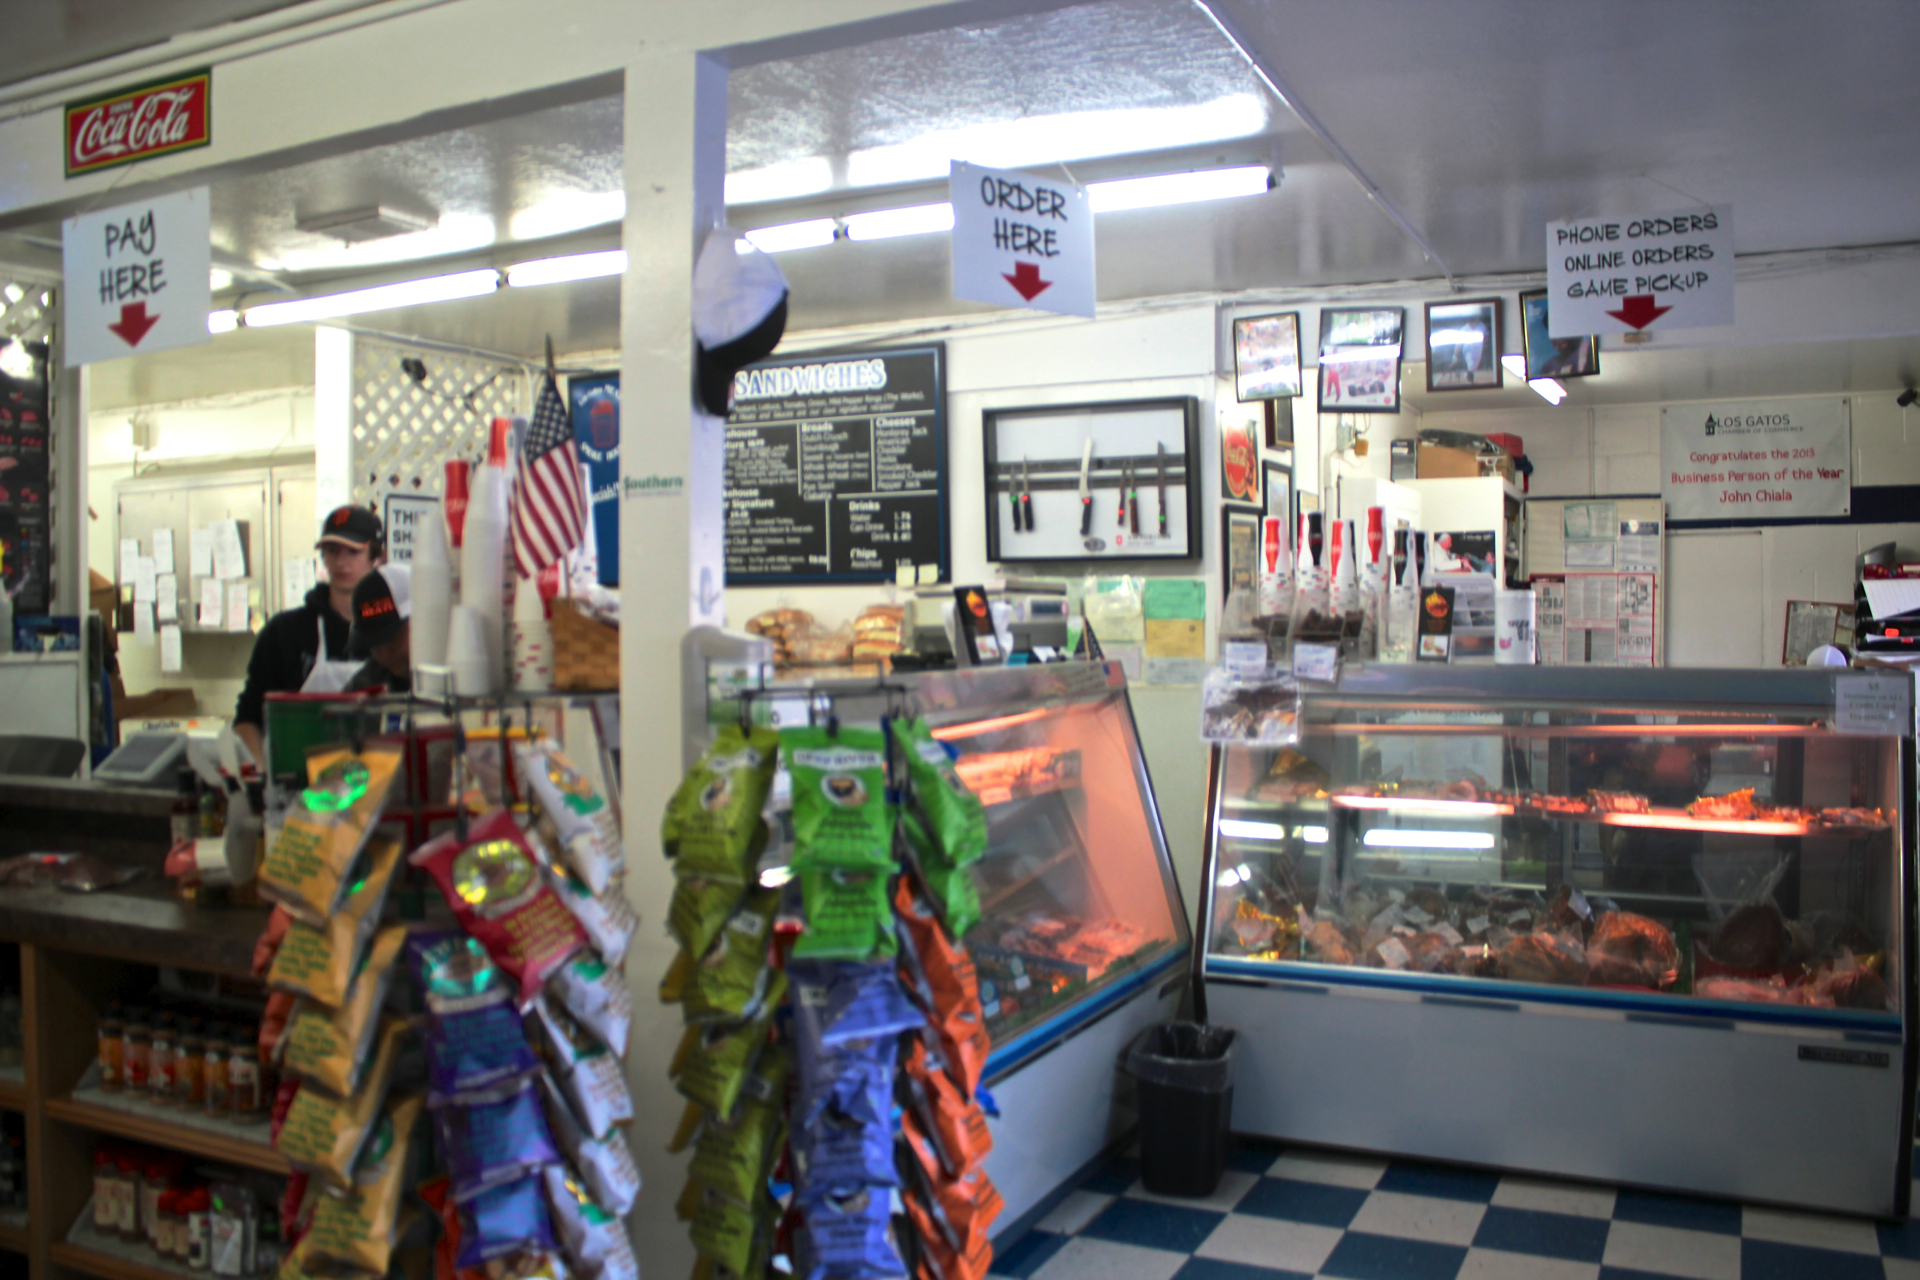 The deli counter at Los Gatos Meats & Smoke House.